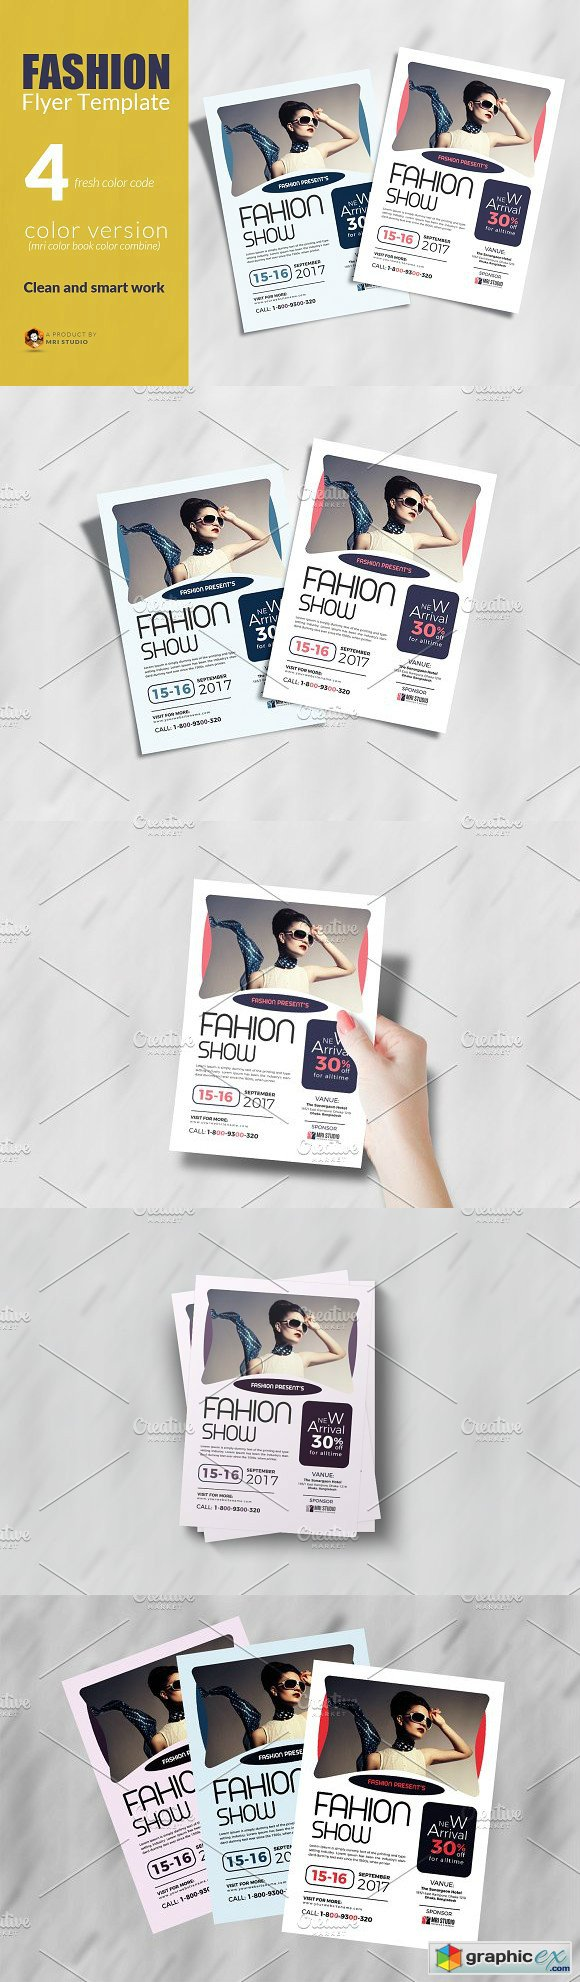 Fashion Flyer Template 1862519